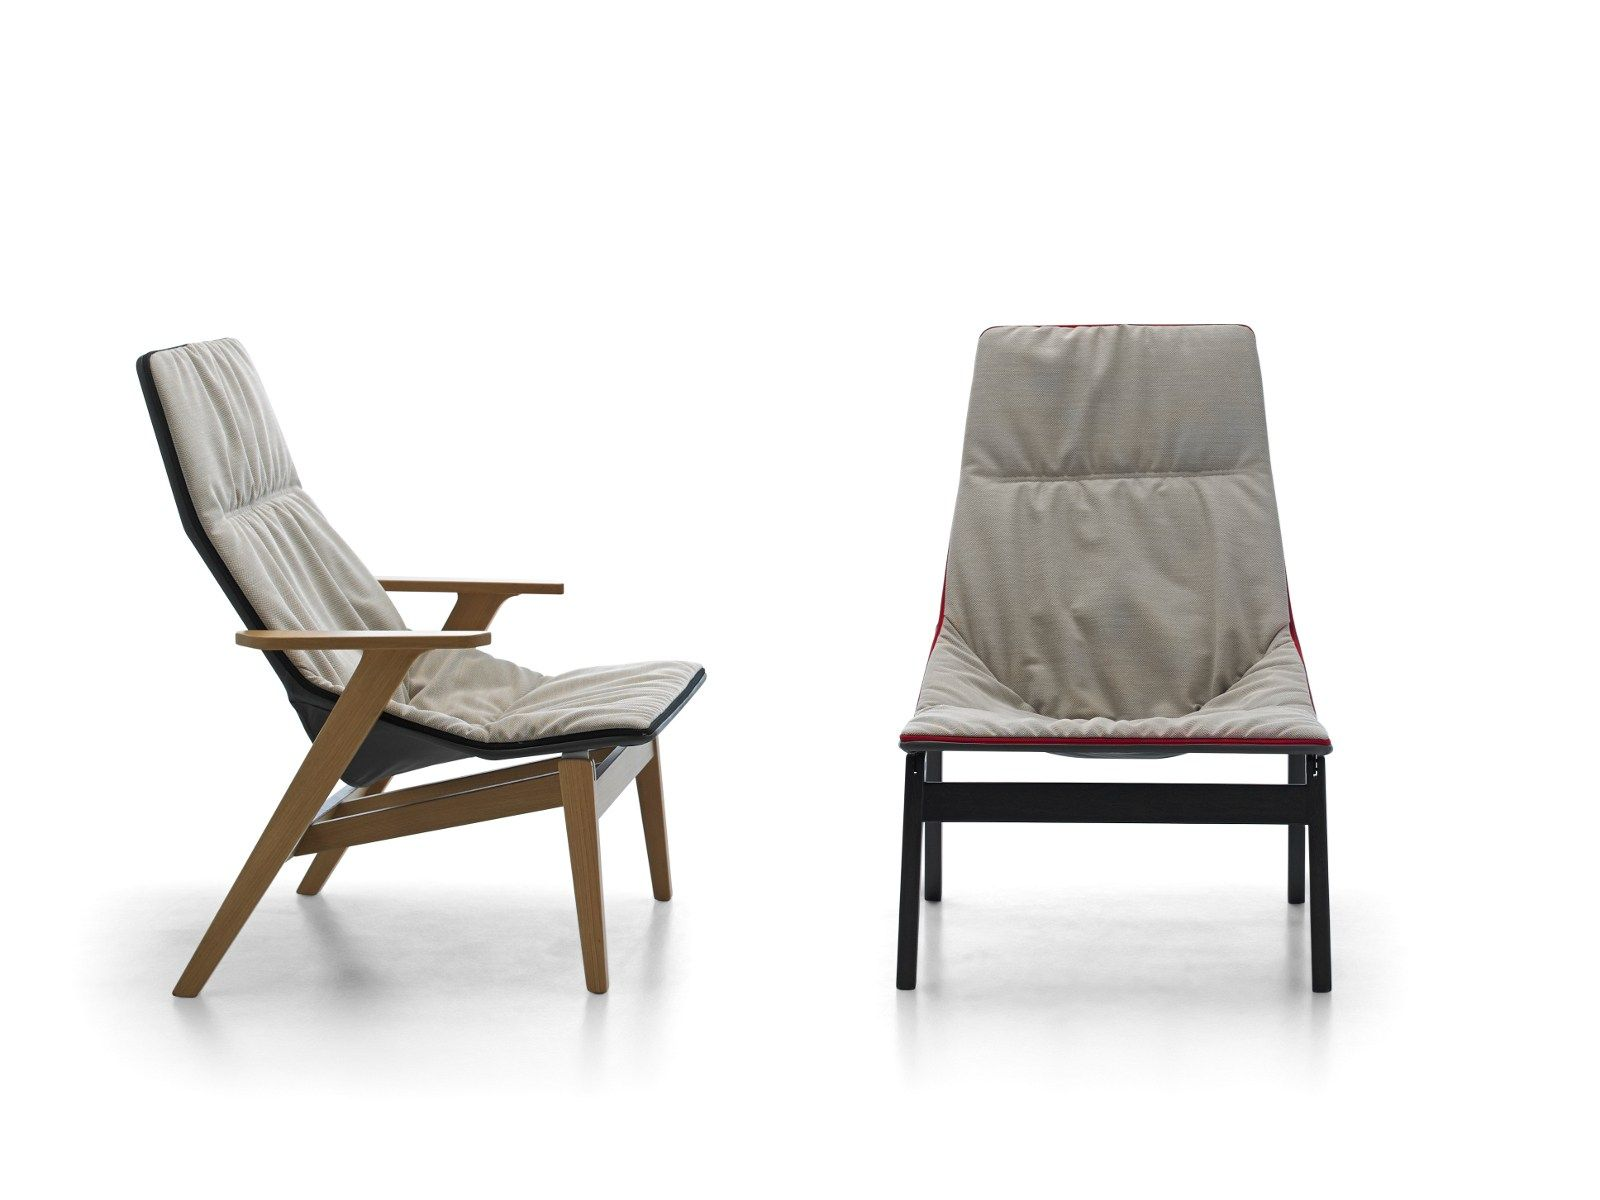 Wooden easy chair designs - Image Result For Viccarbe Ace Wood